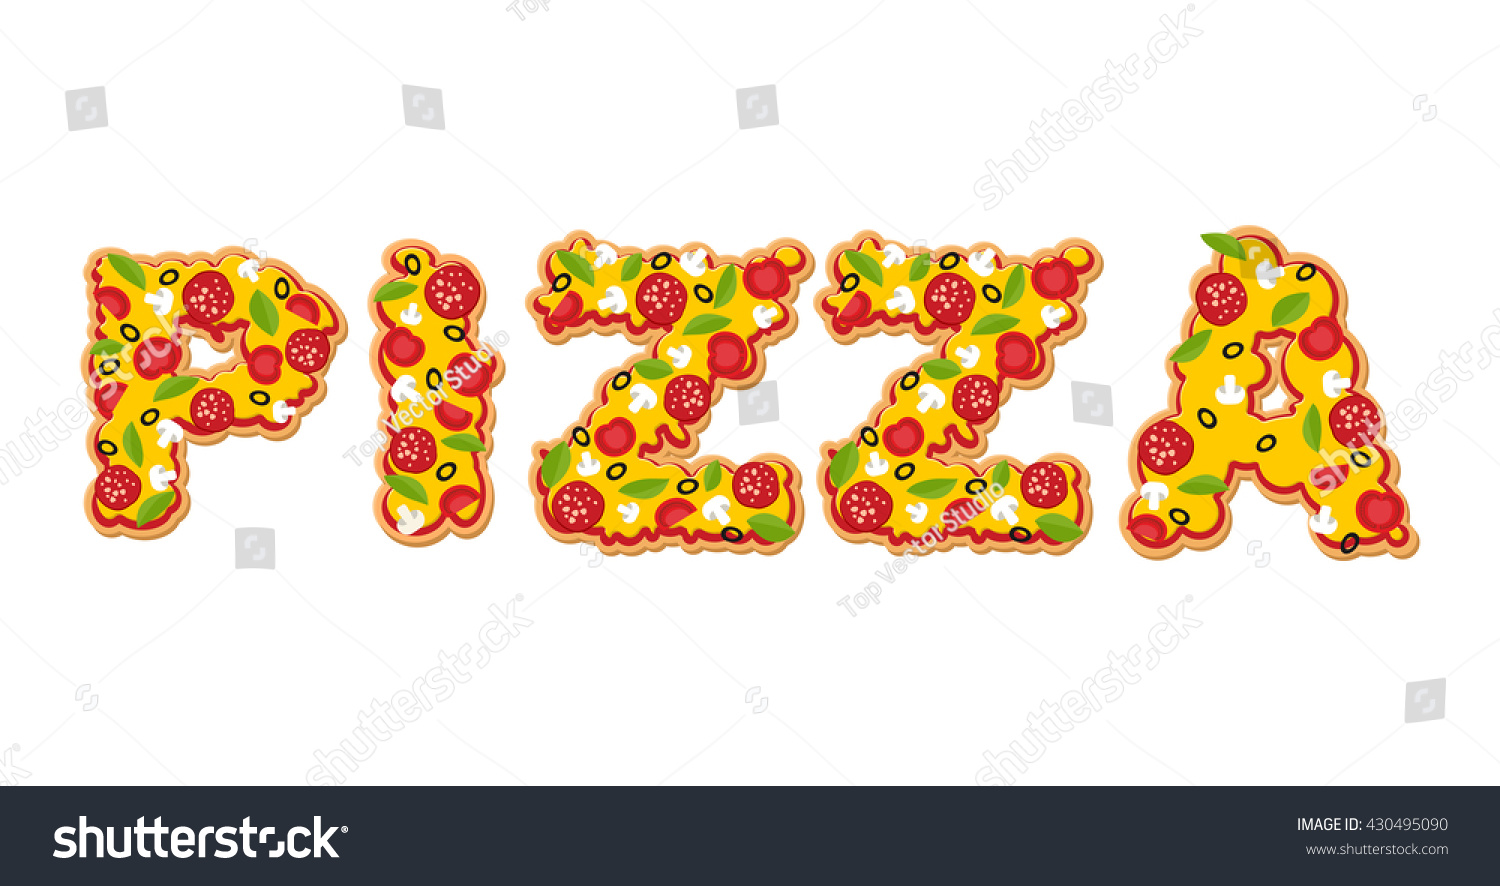 pizza text letters appetizing slices pizza stock vector 430495090 letters of appetizing slices of pizza lettring of fast food typography